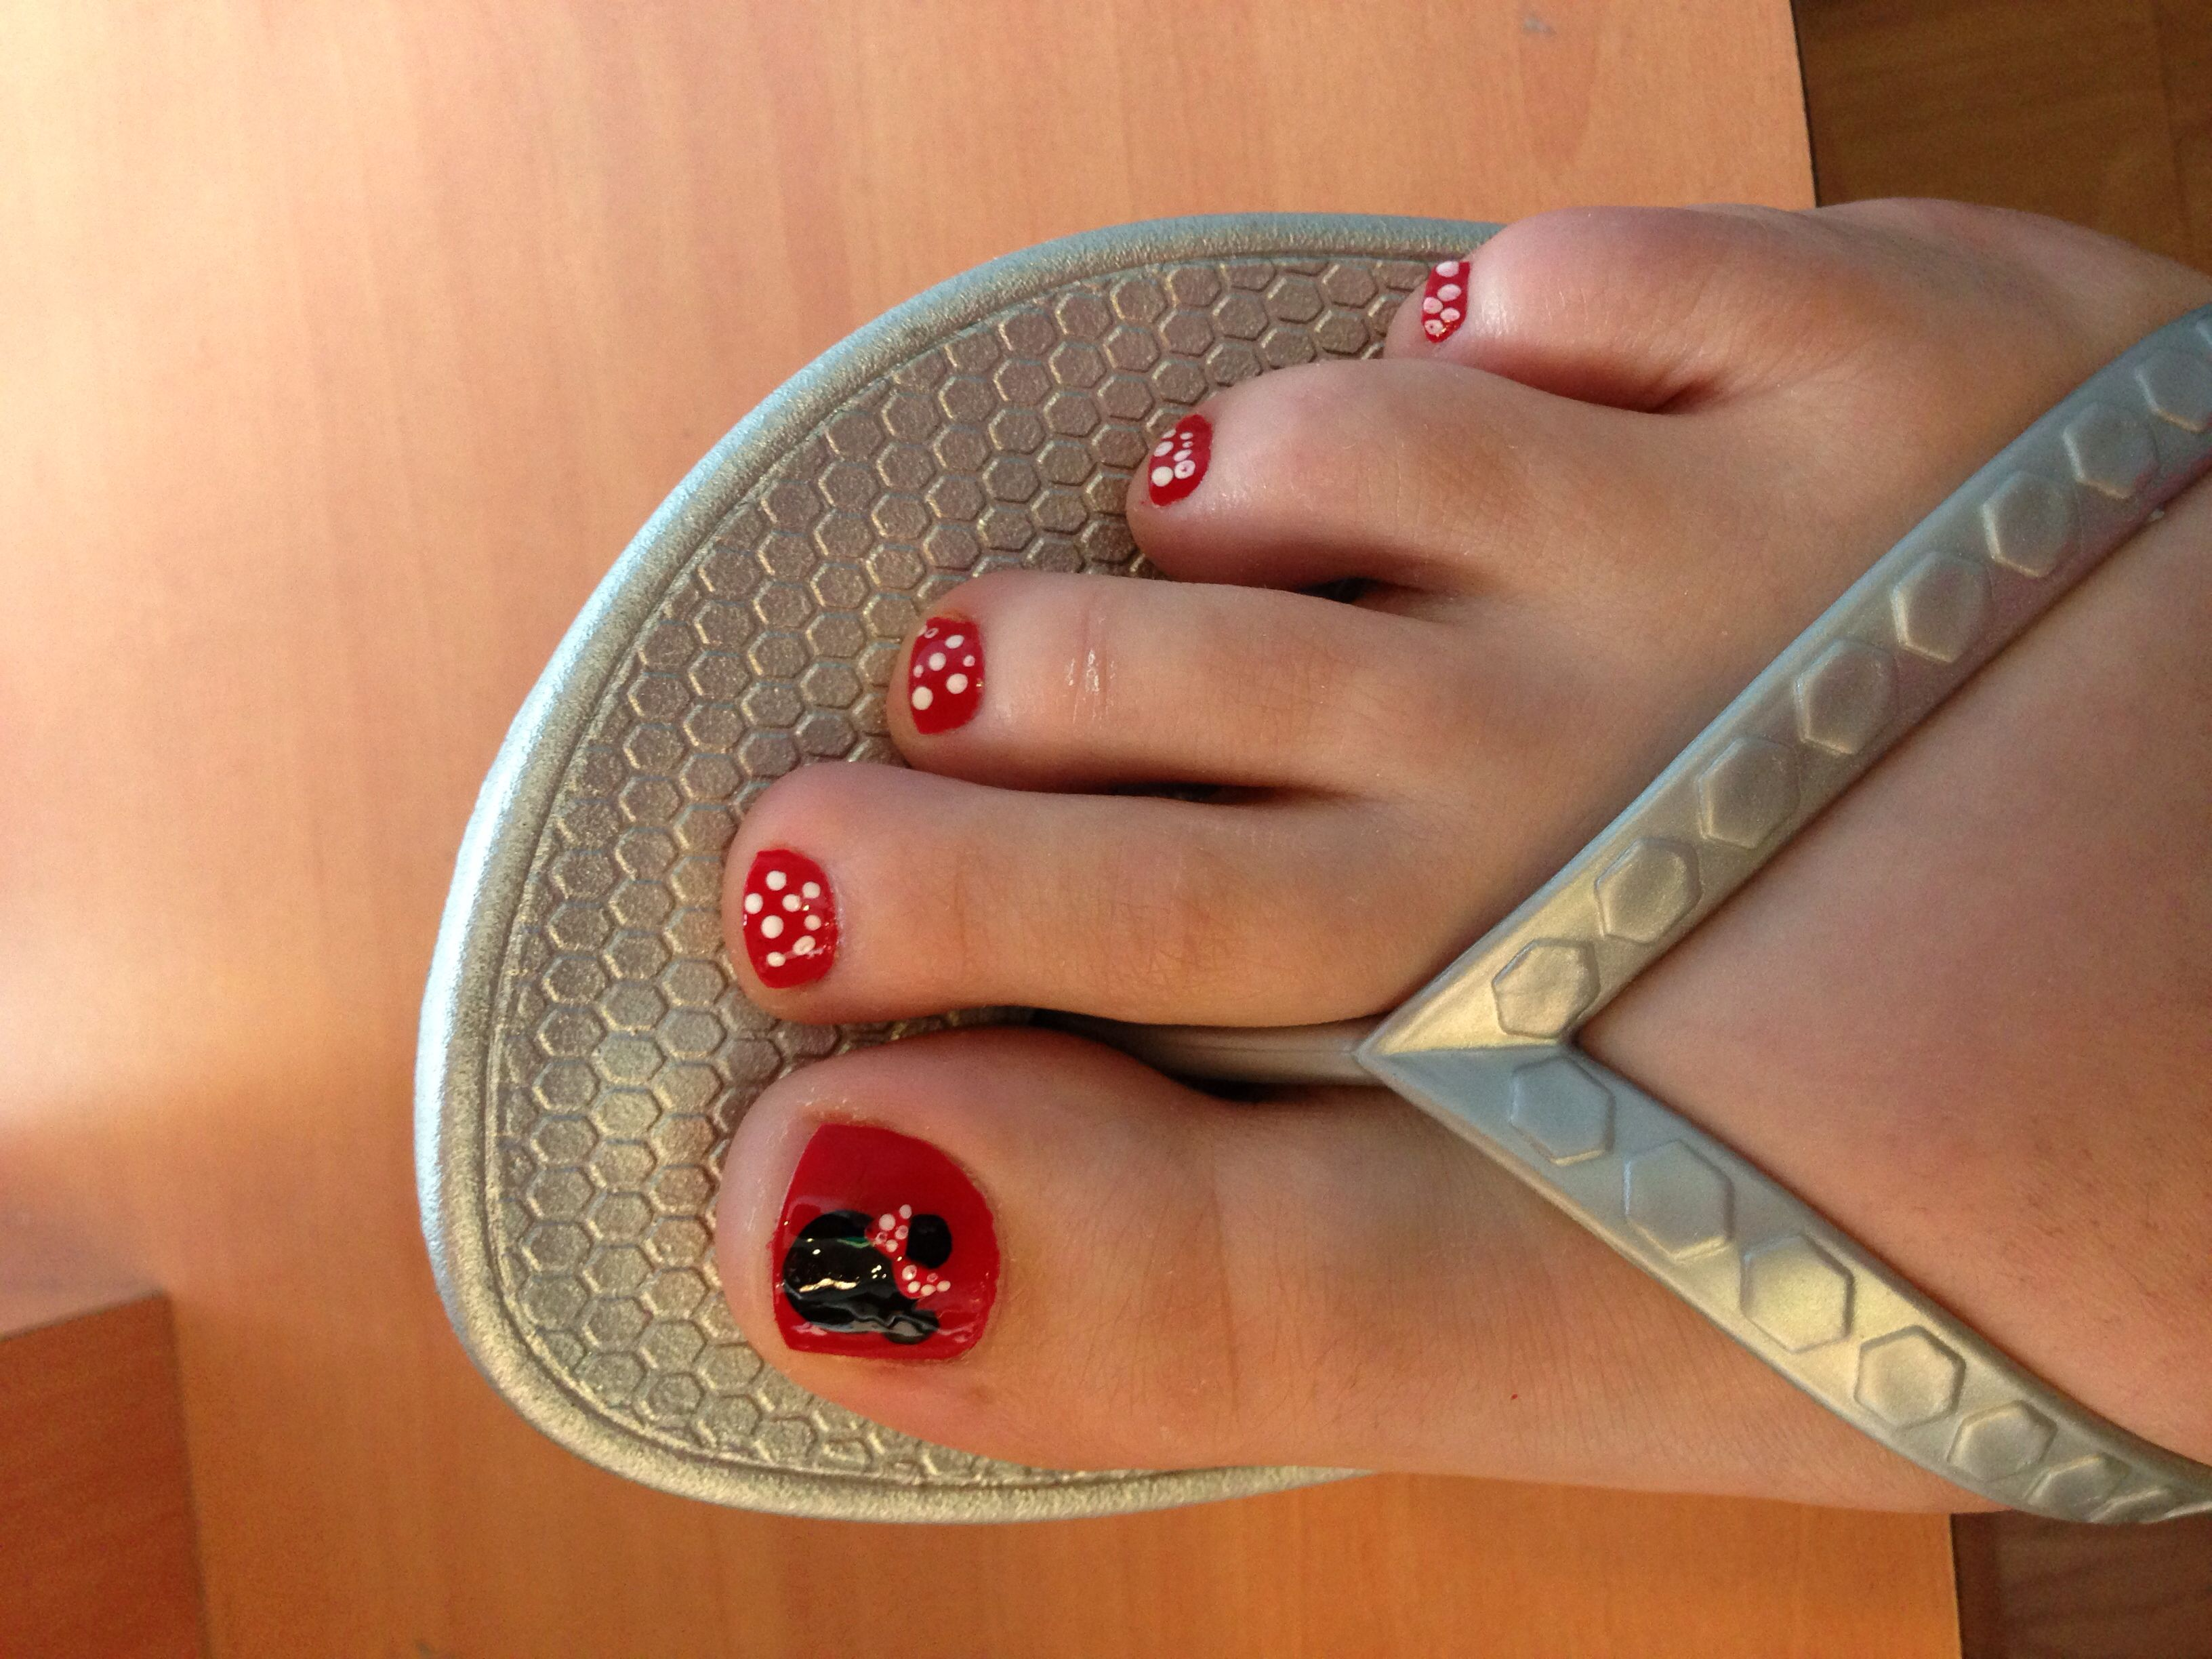 Disney pedicure